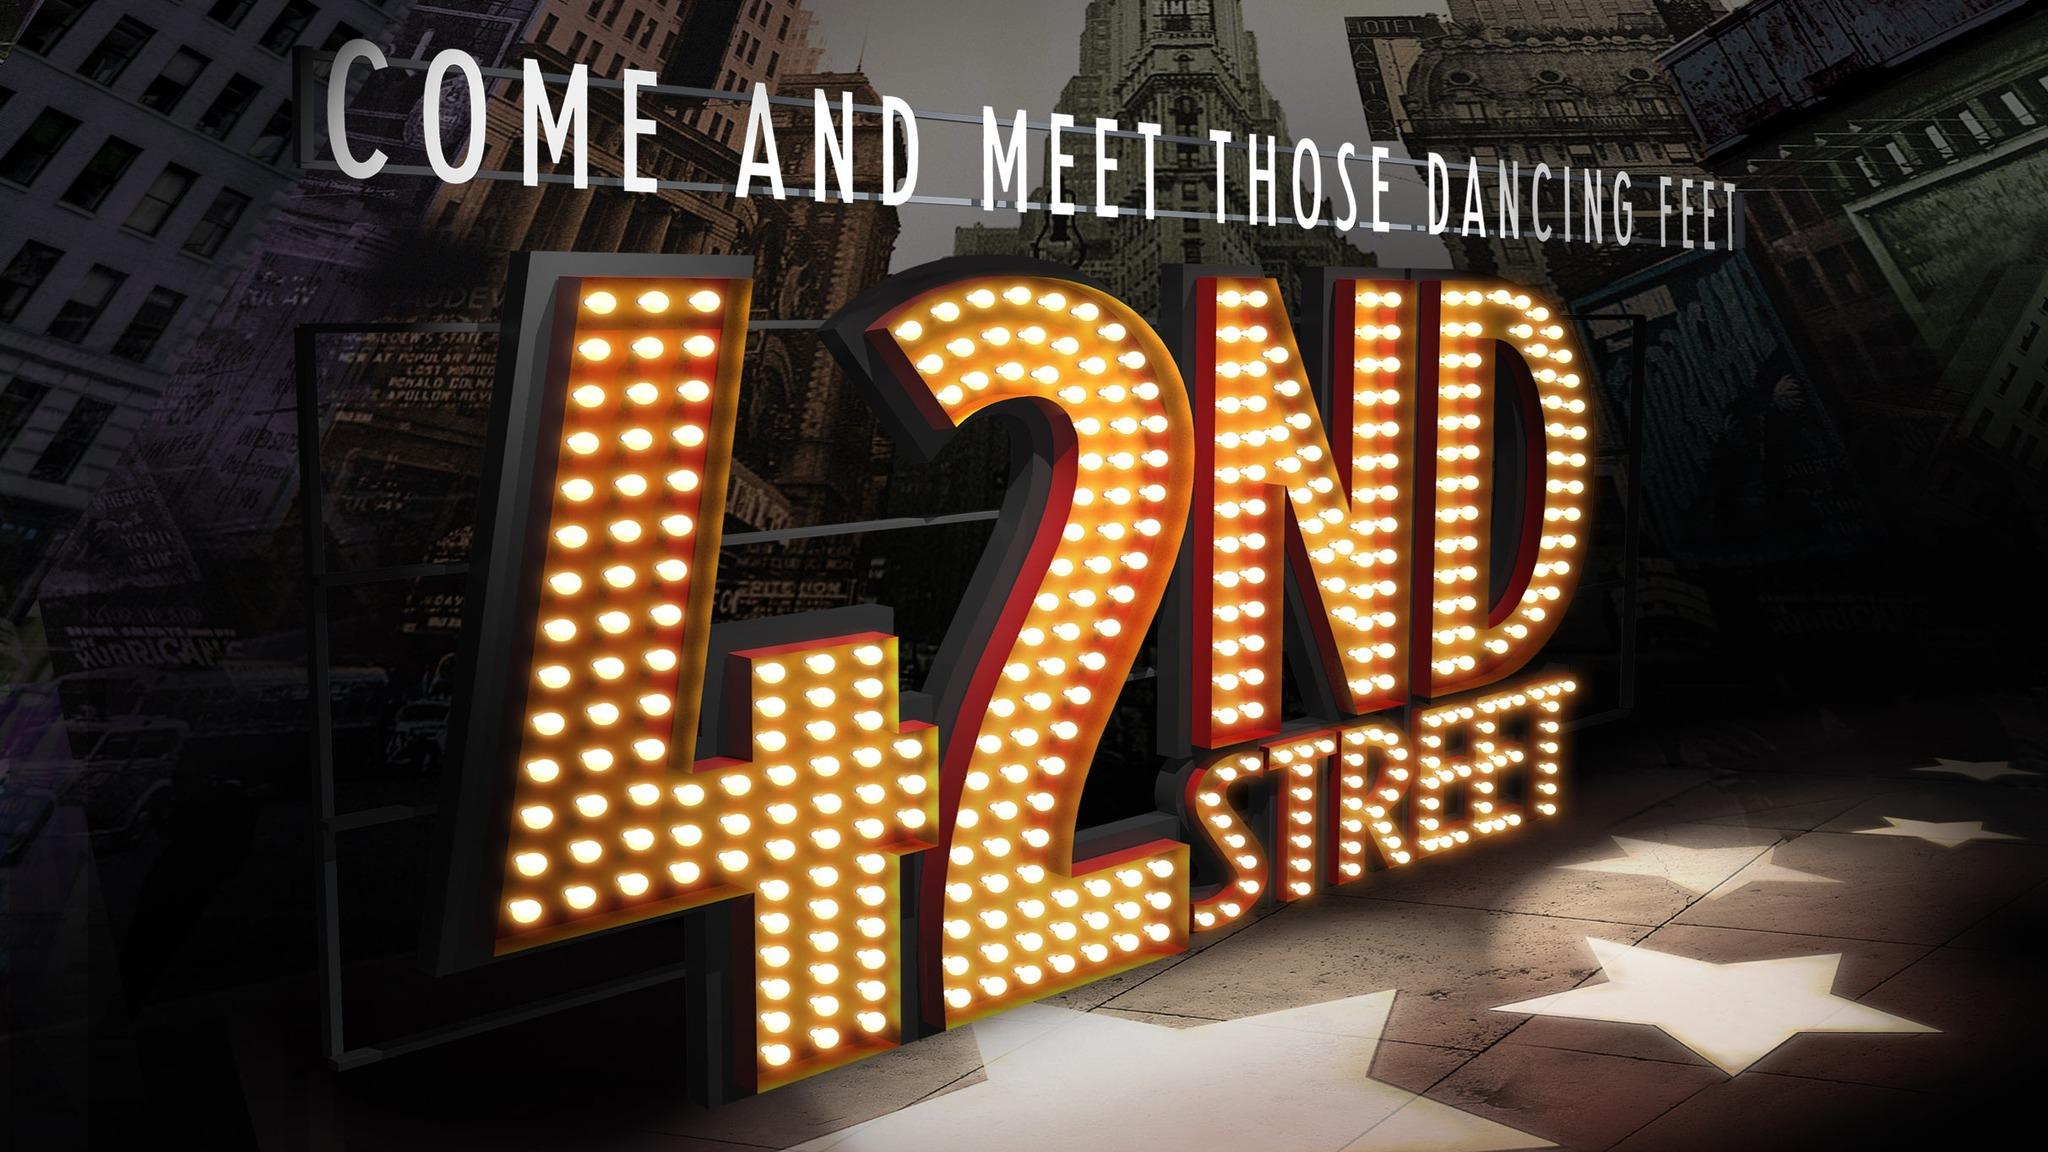 42nd Street at Ordway Theatre - Saint Paul, MN 55102